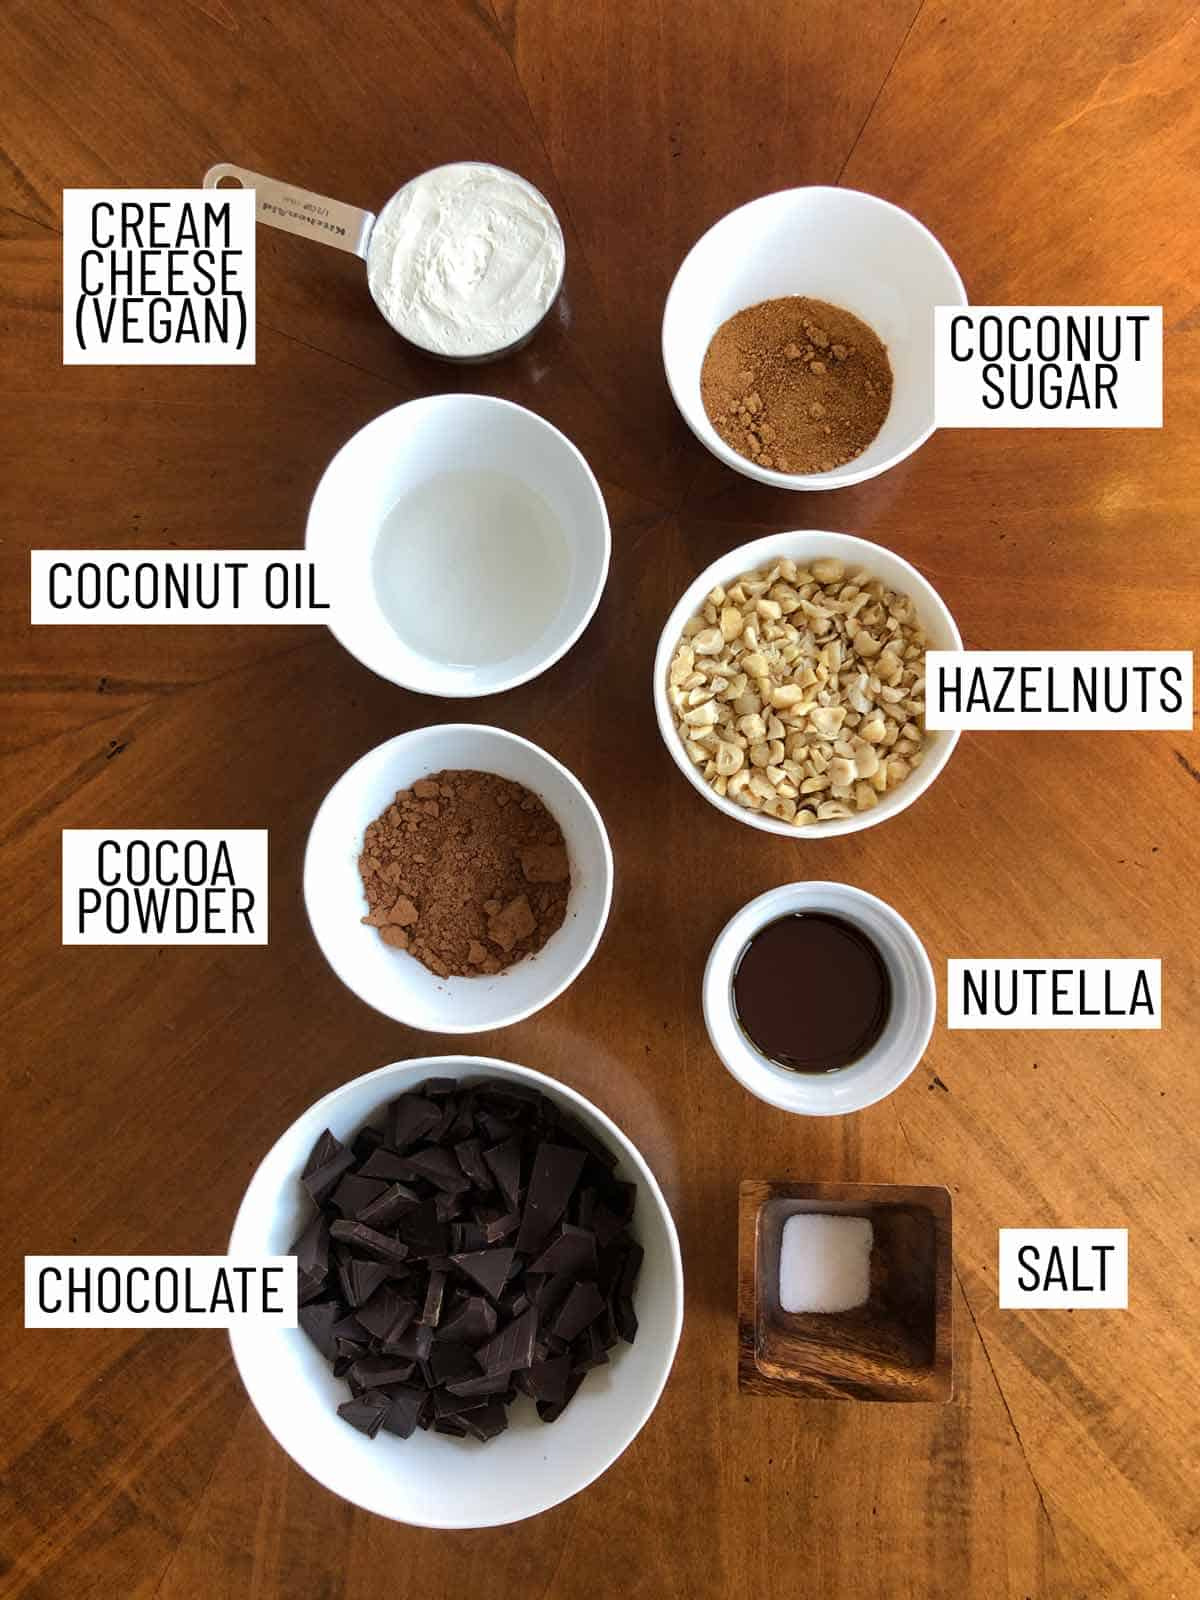 Overhead image of ingredients for no bake nutella cheesecake cups: cream cheese, coconut oil, cocoa powder, chocolate, salt, nutella, hazelnuts, coconut sugar.